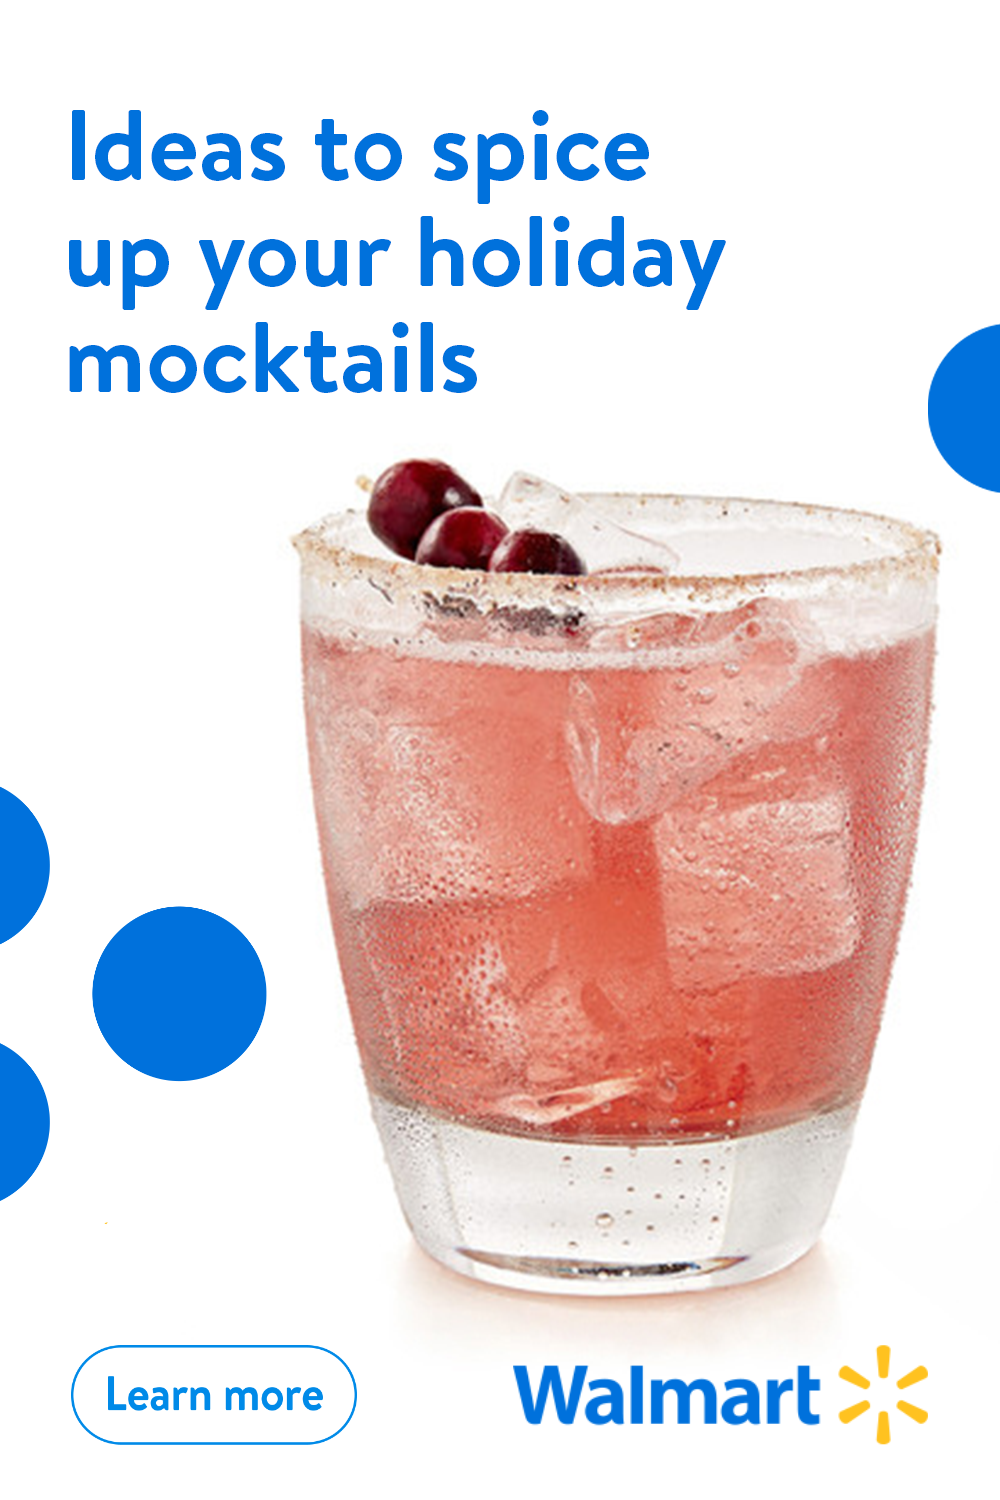 If you love mocktails, then you'll love these crafty ways to spice them up from Walmart. From adding bright and colorful garnish to creating herb-infused ice cubes, we can help take your holiday drink to a delicious new level.